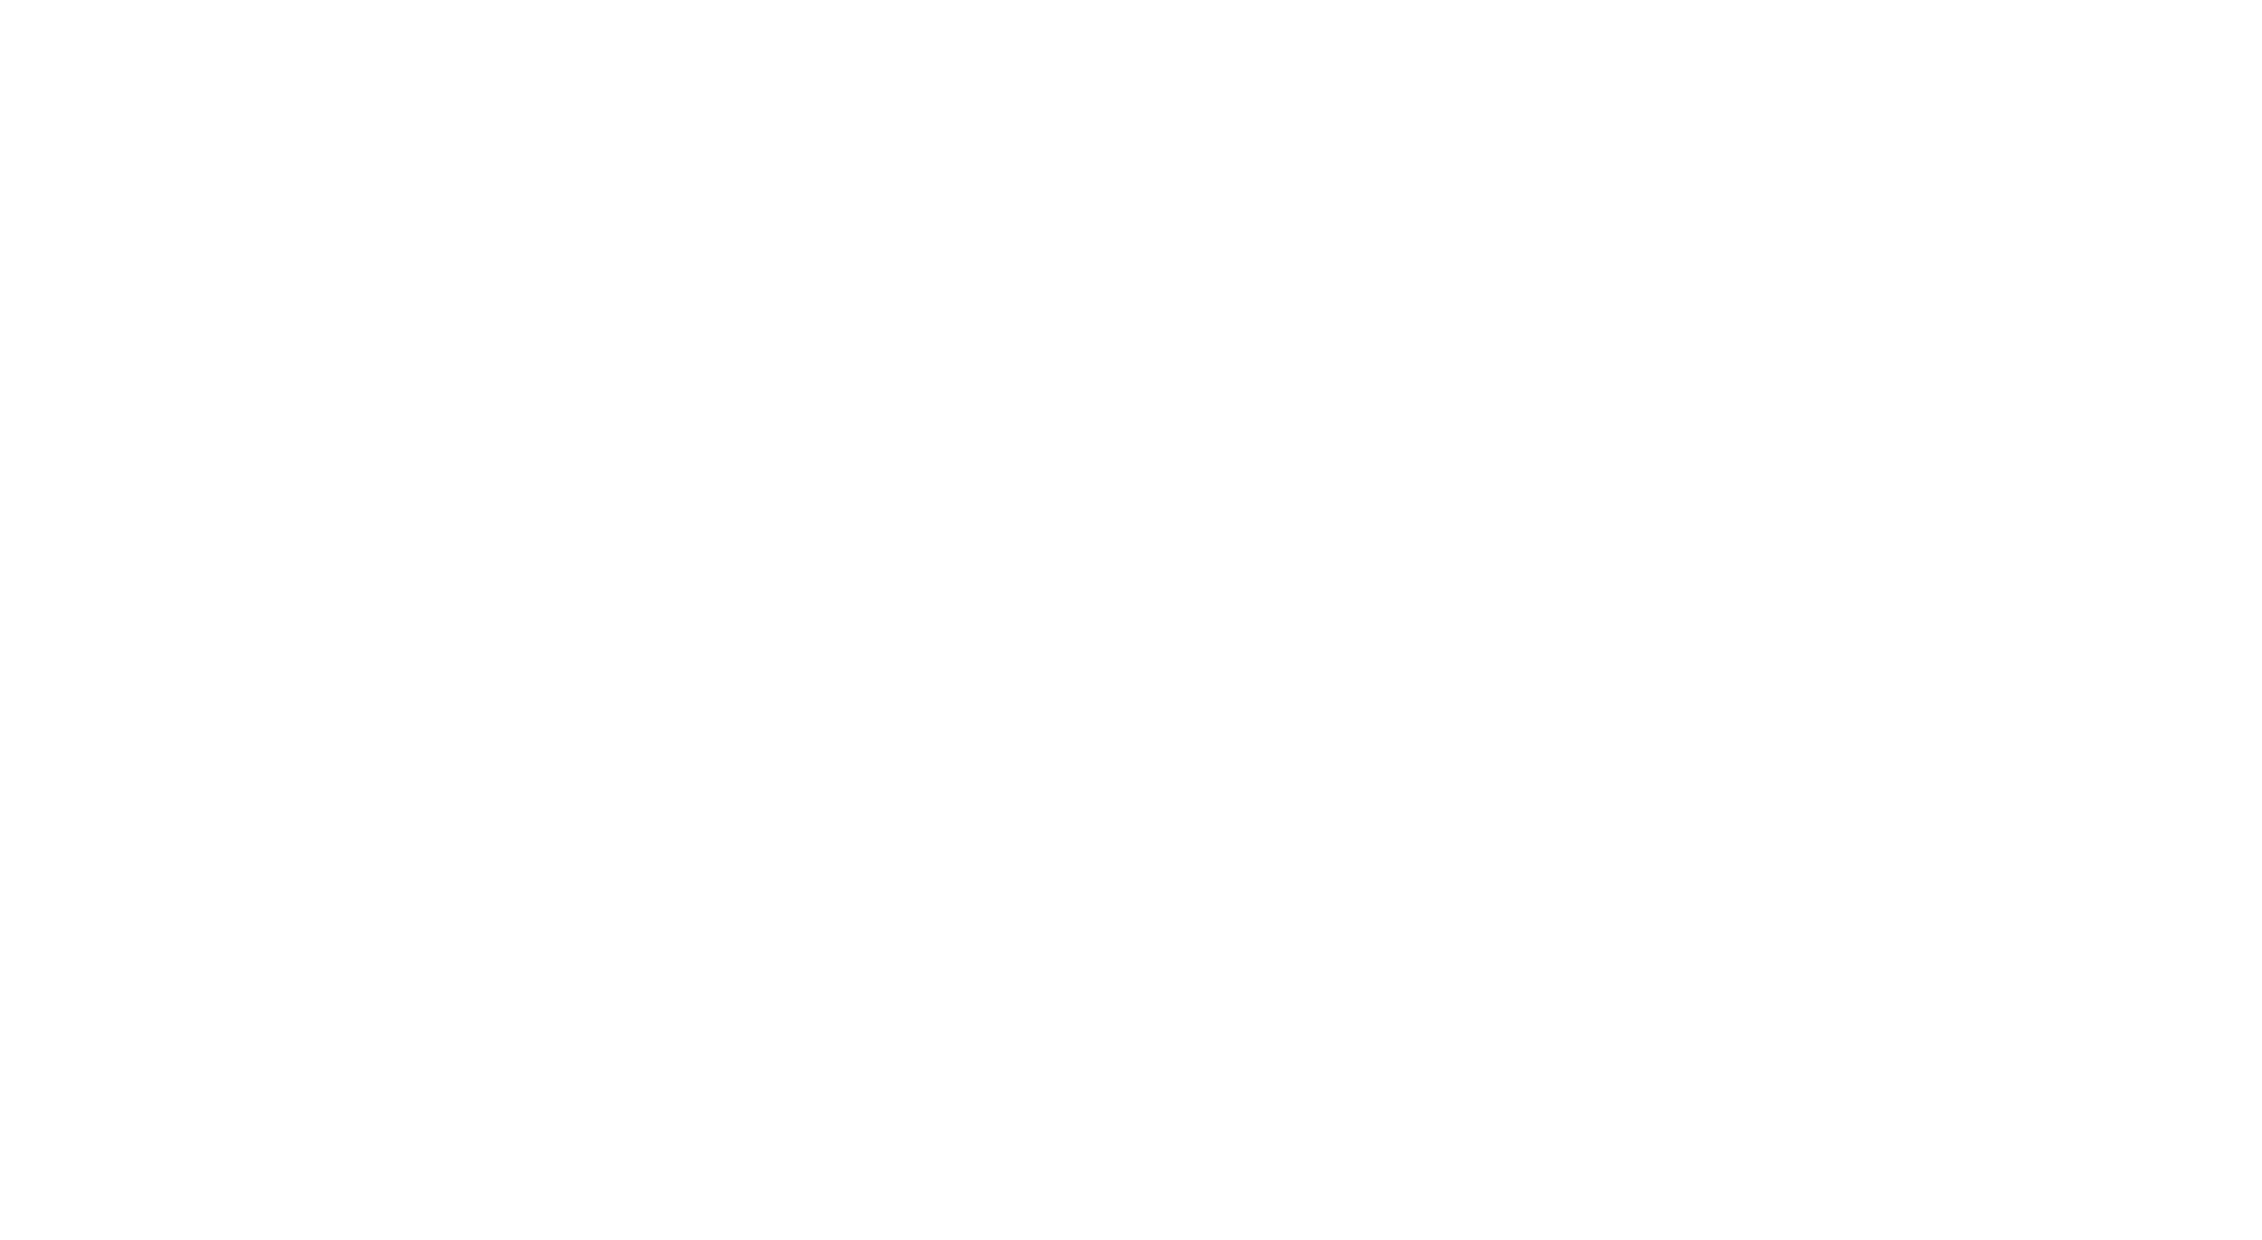 Buy Handmade by evadele